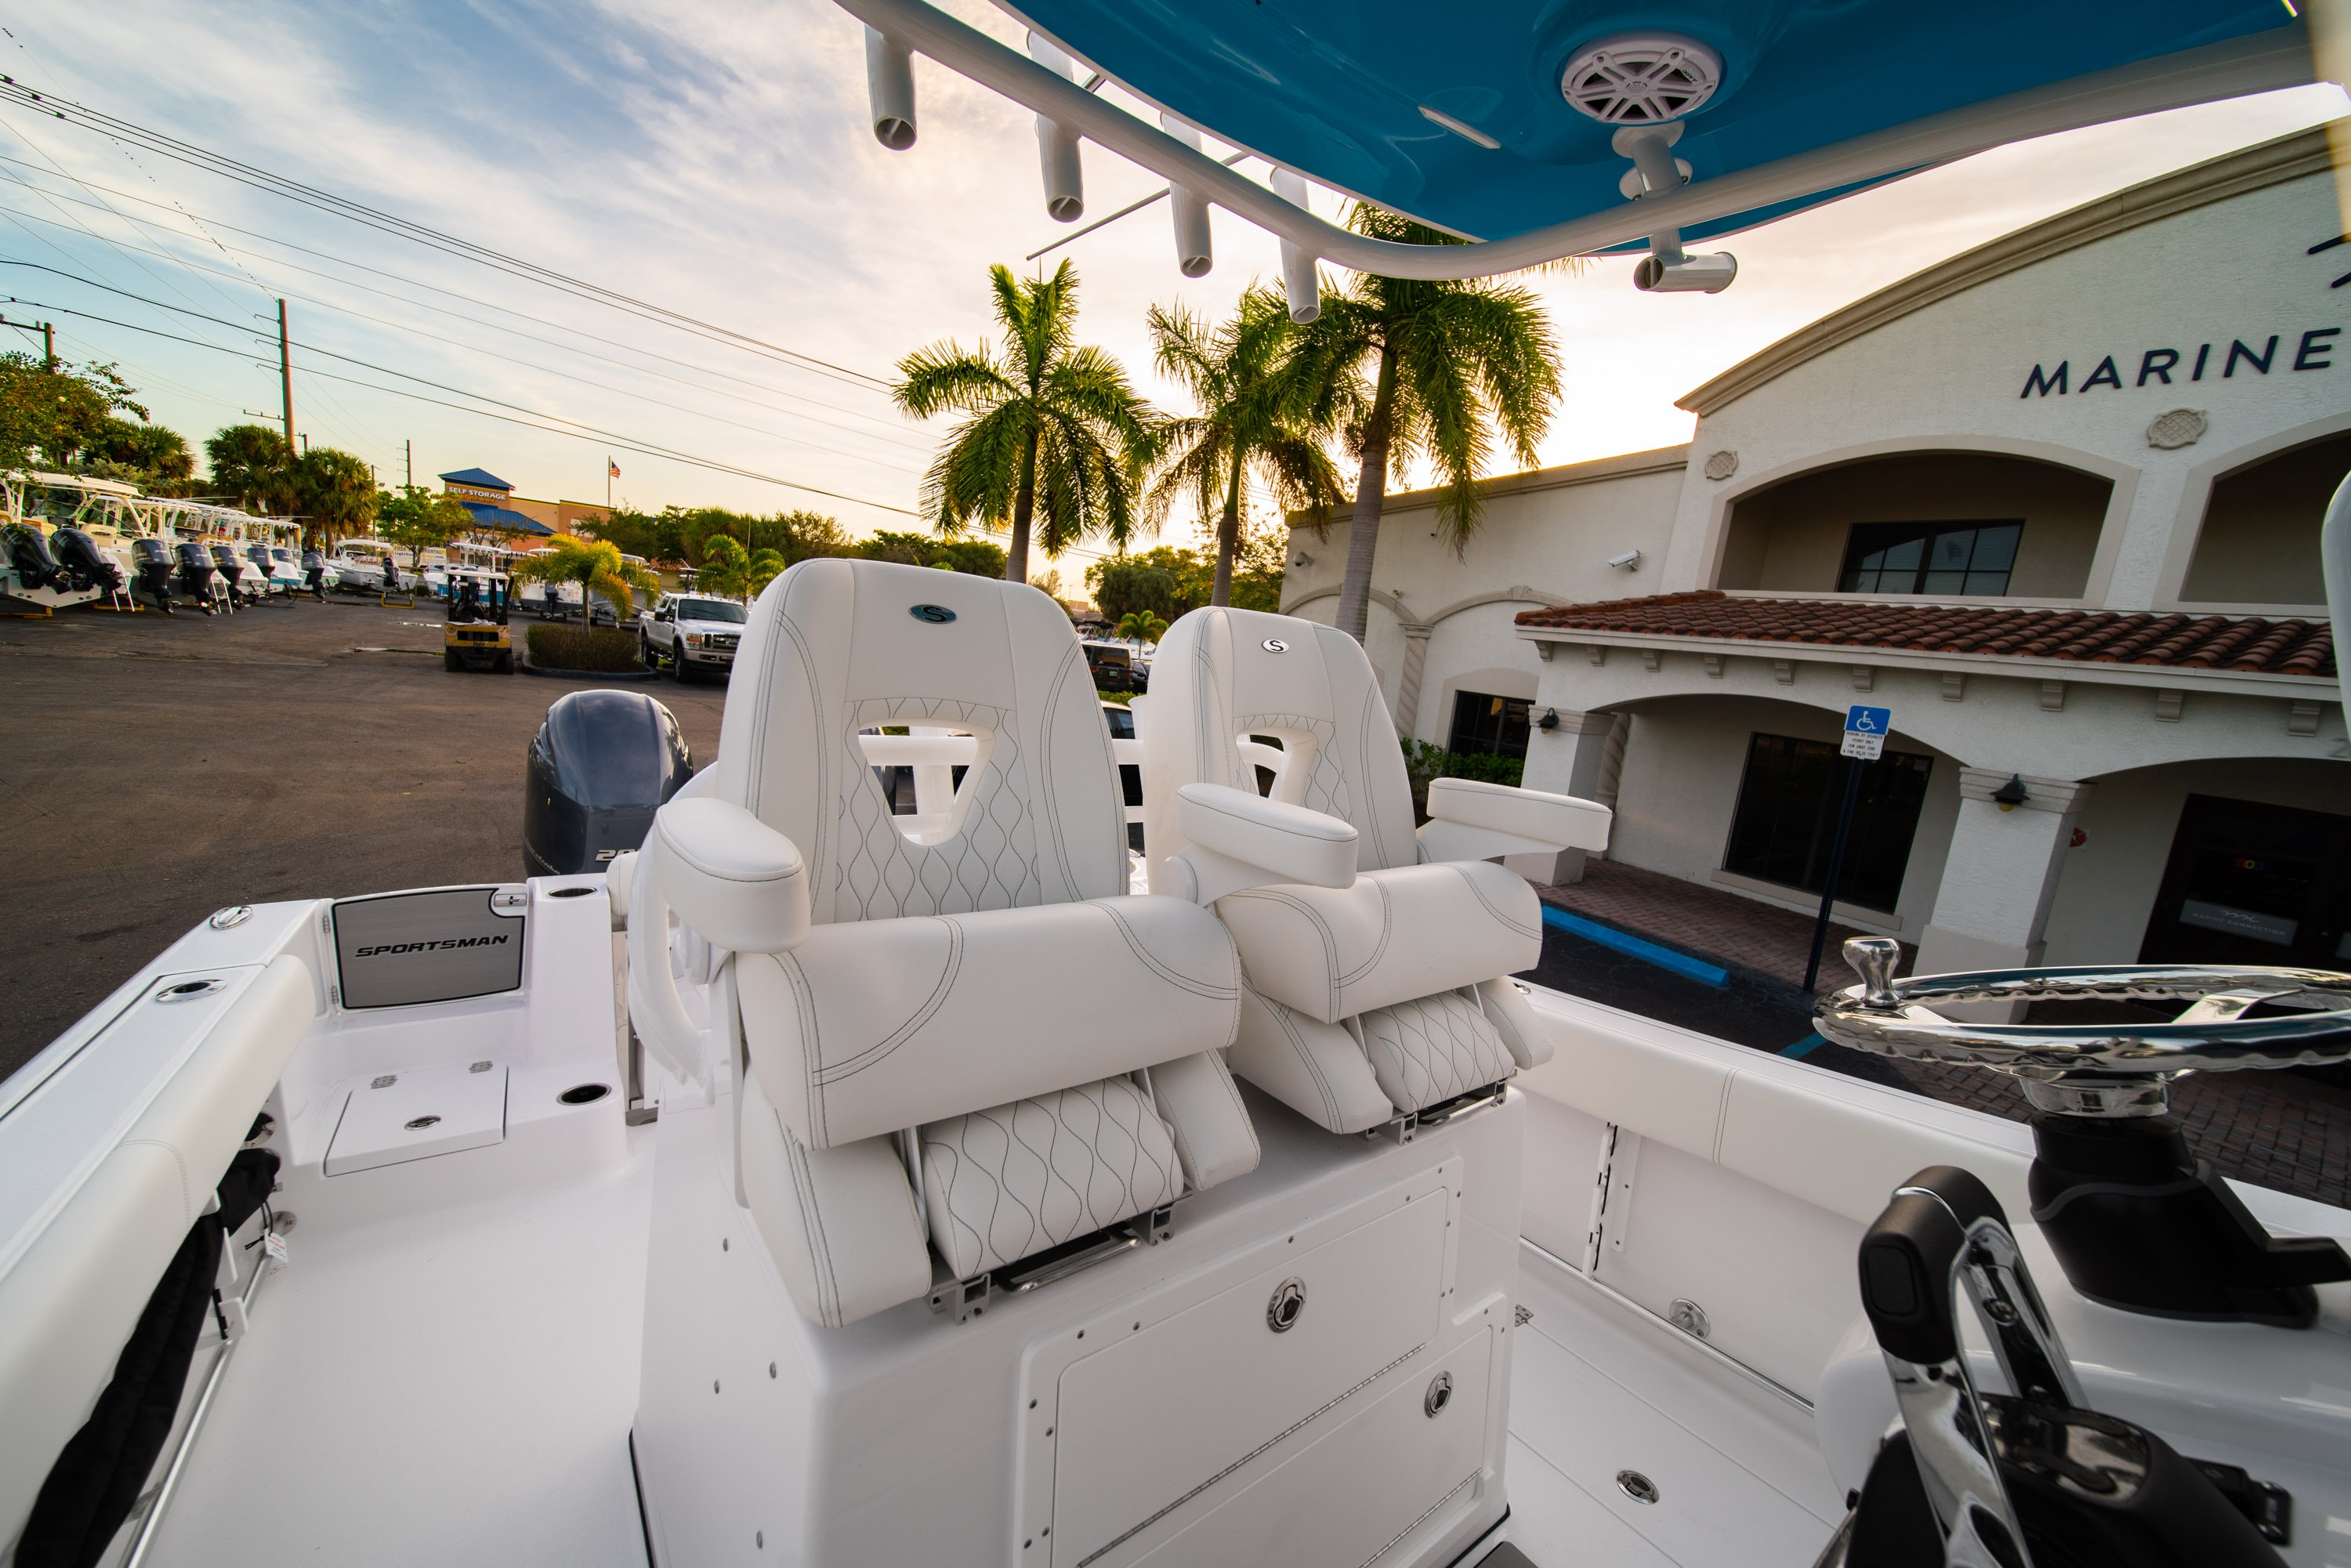 Thumbnail 38 for New 2020 Sportsman Open 282 Center Console boat for sale in West Palm Beach, FL